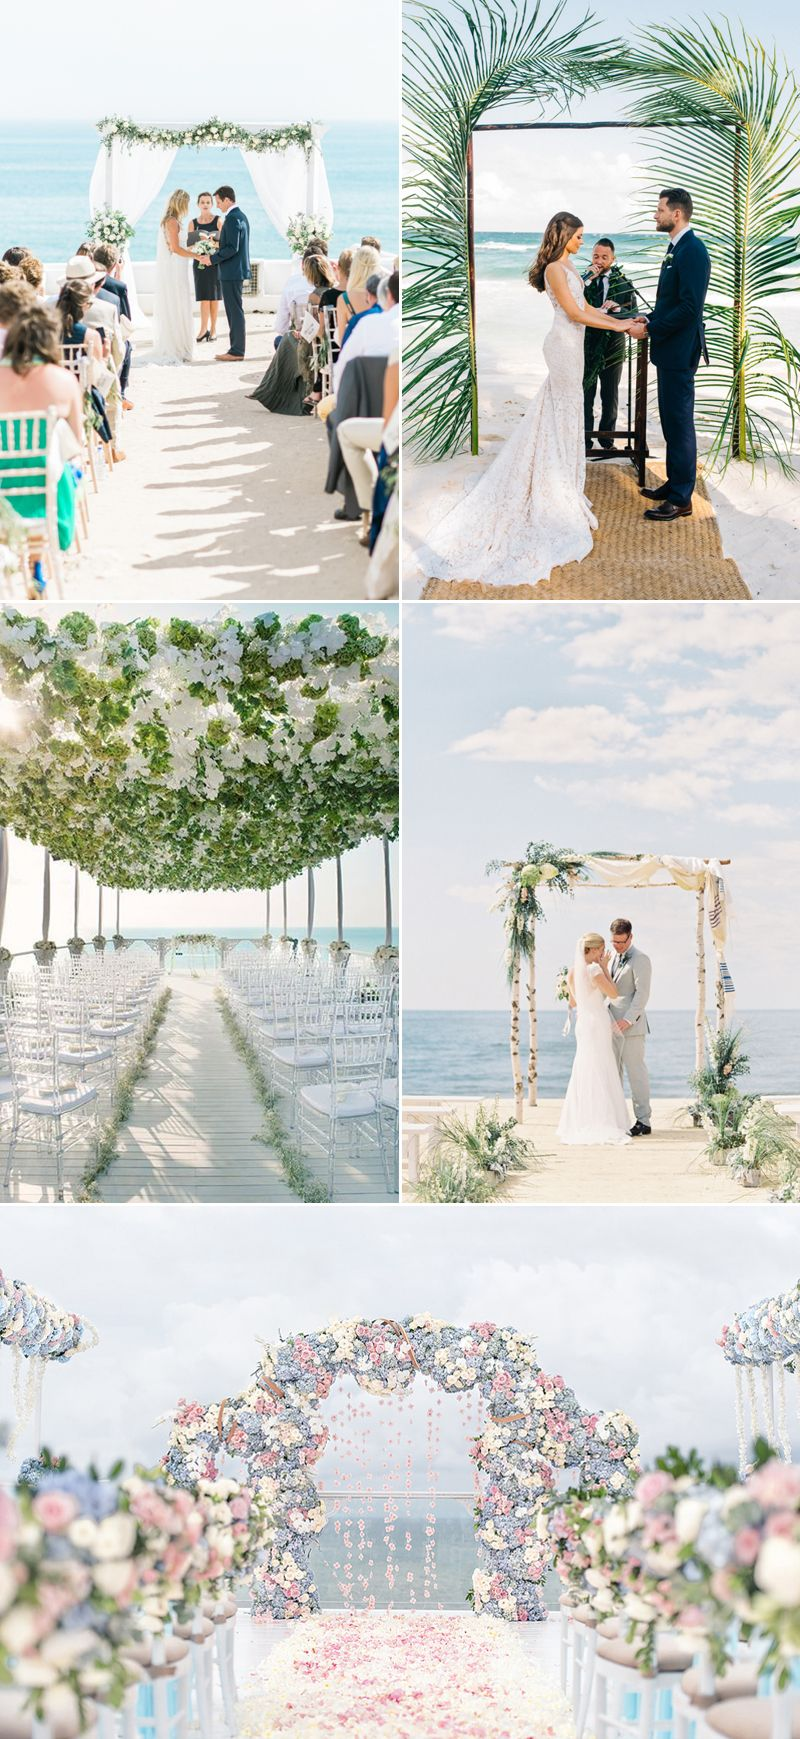 23 romantic beach themed wedding ideas casamento casamento praia 23 romantic beach themed wedding ideas junglespirit Gallery